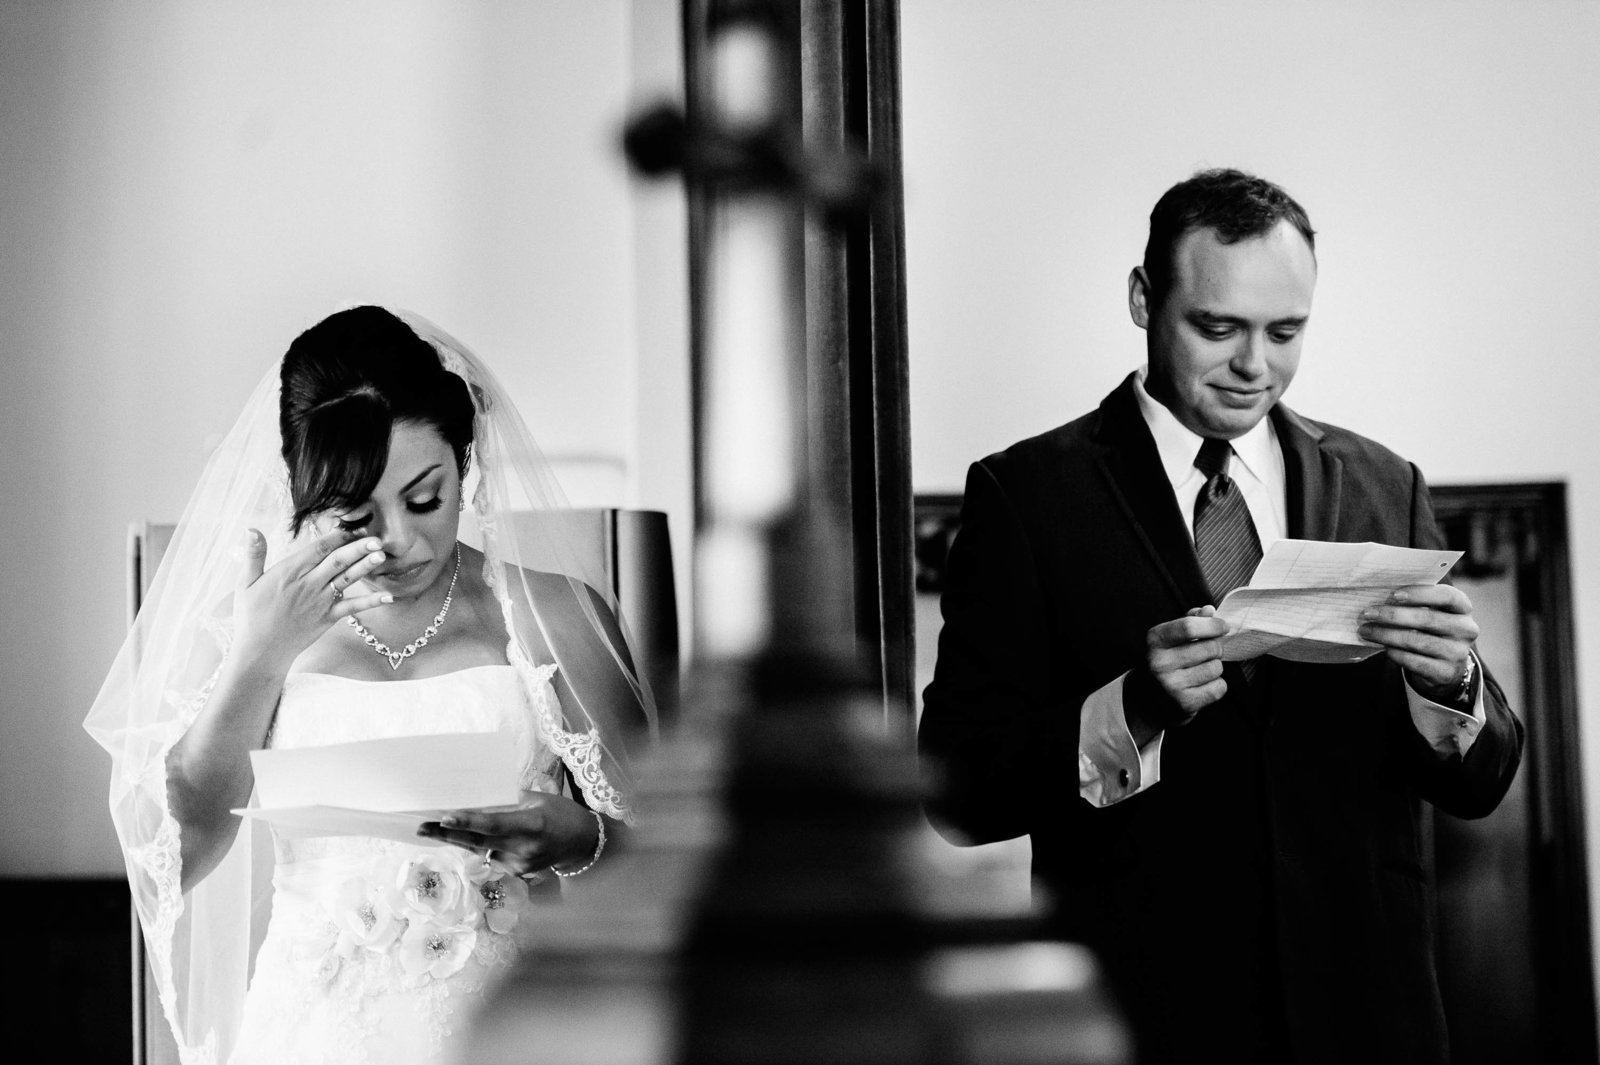 179-El-paso-wedding-photographer-El Paso Wedding Photographer_M64